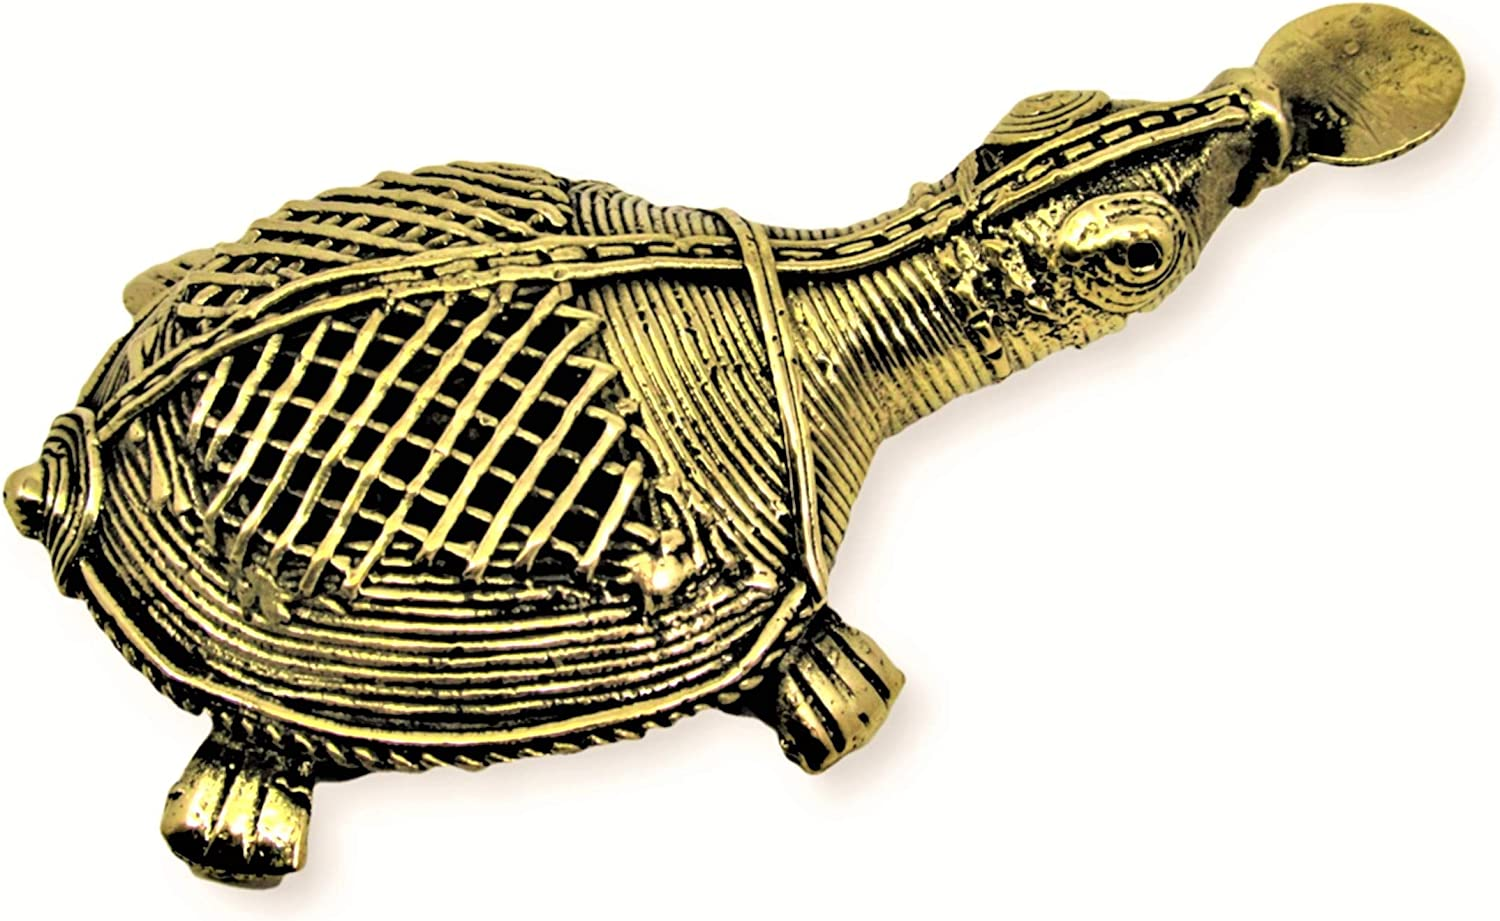 OmSai Dhokra Metal Art - Handcrafted Tortoise with Coin | Vaastu Significance | Turtle for Home | Desk Decor